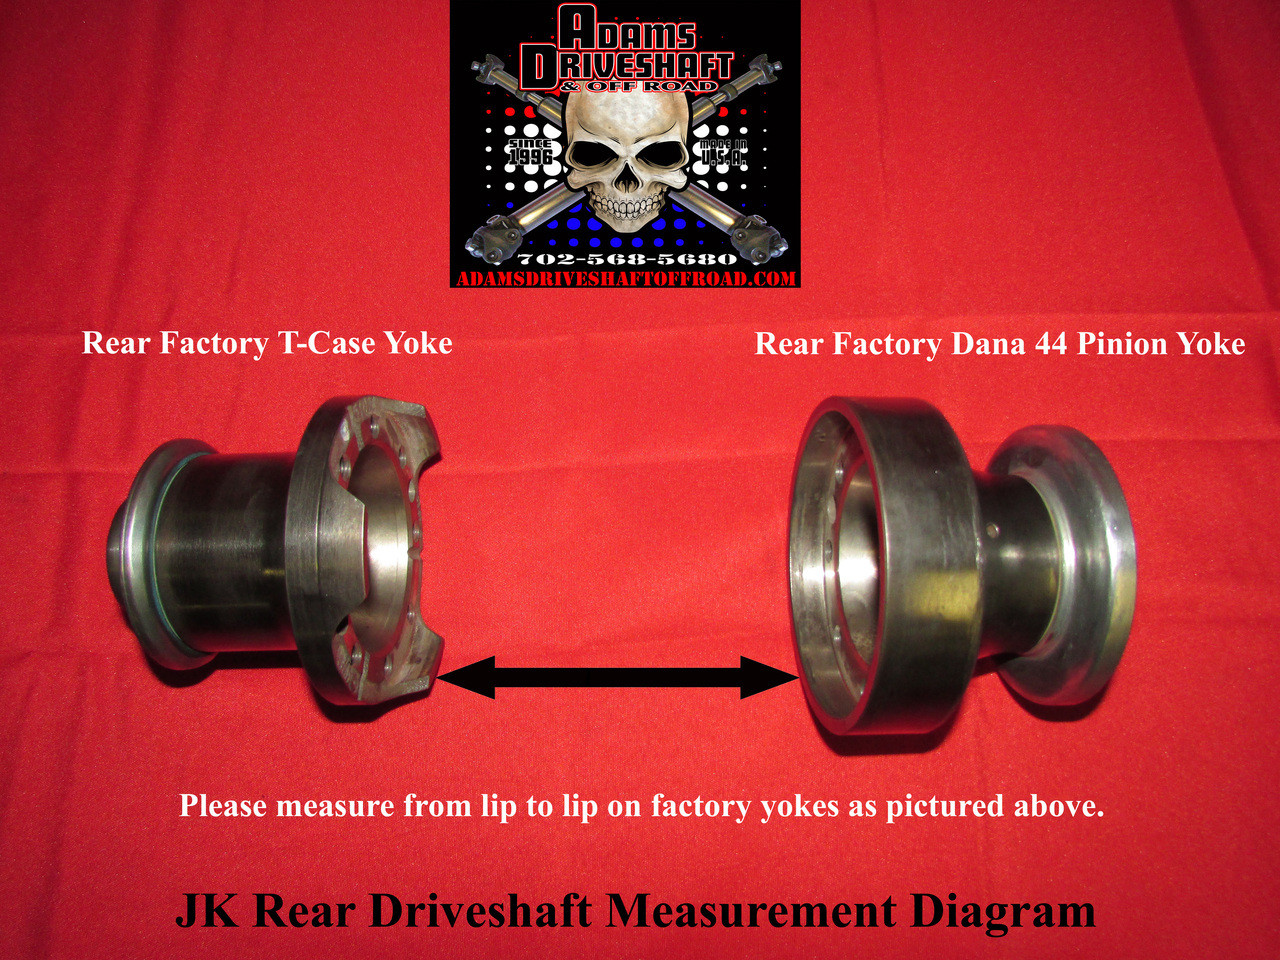 Rear Driveshaft Measurement Required